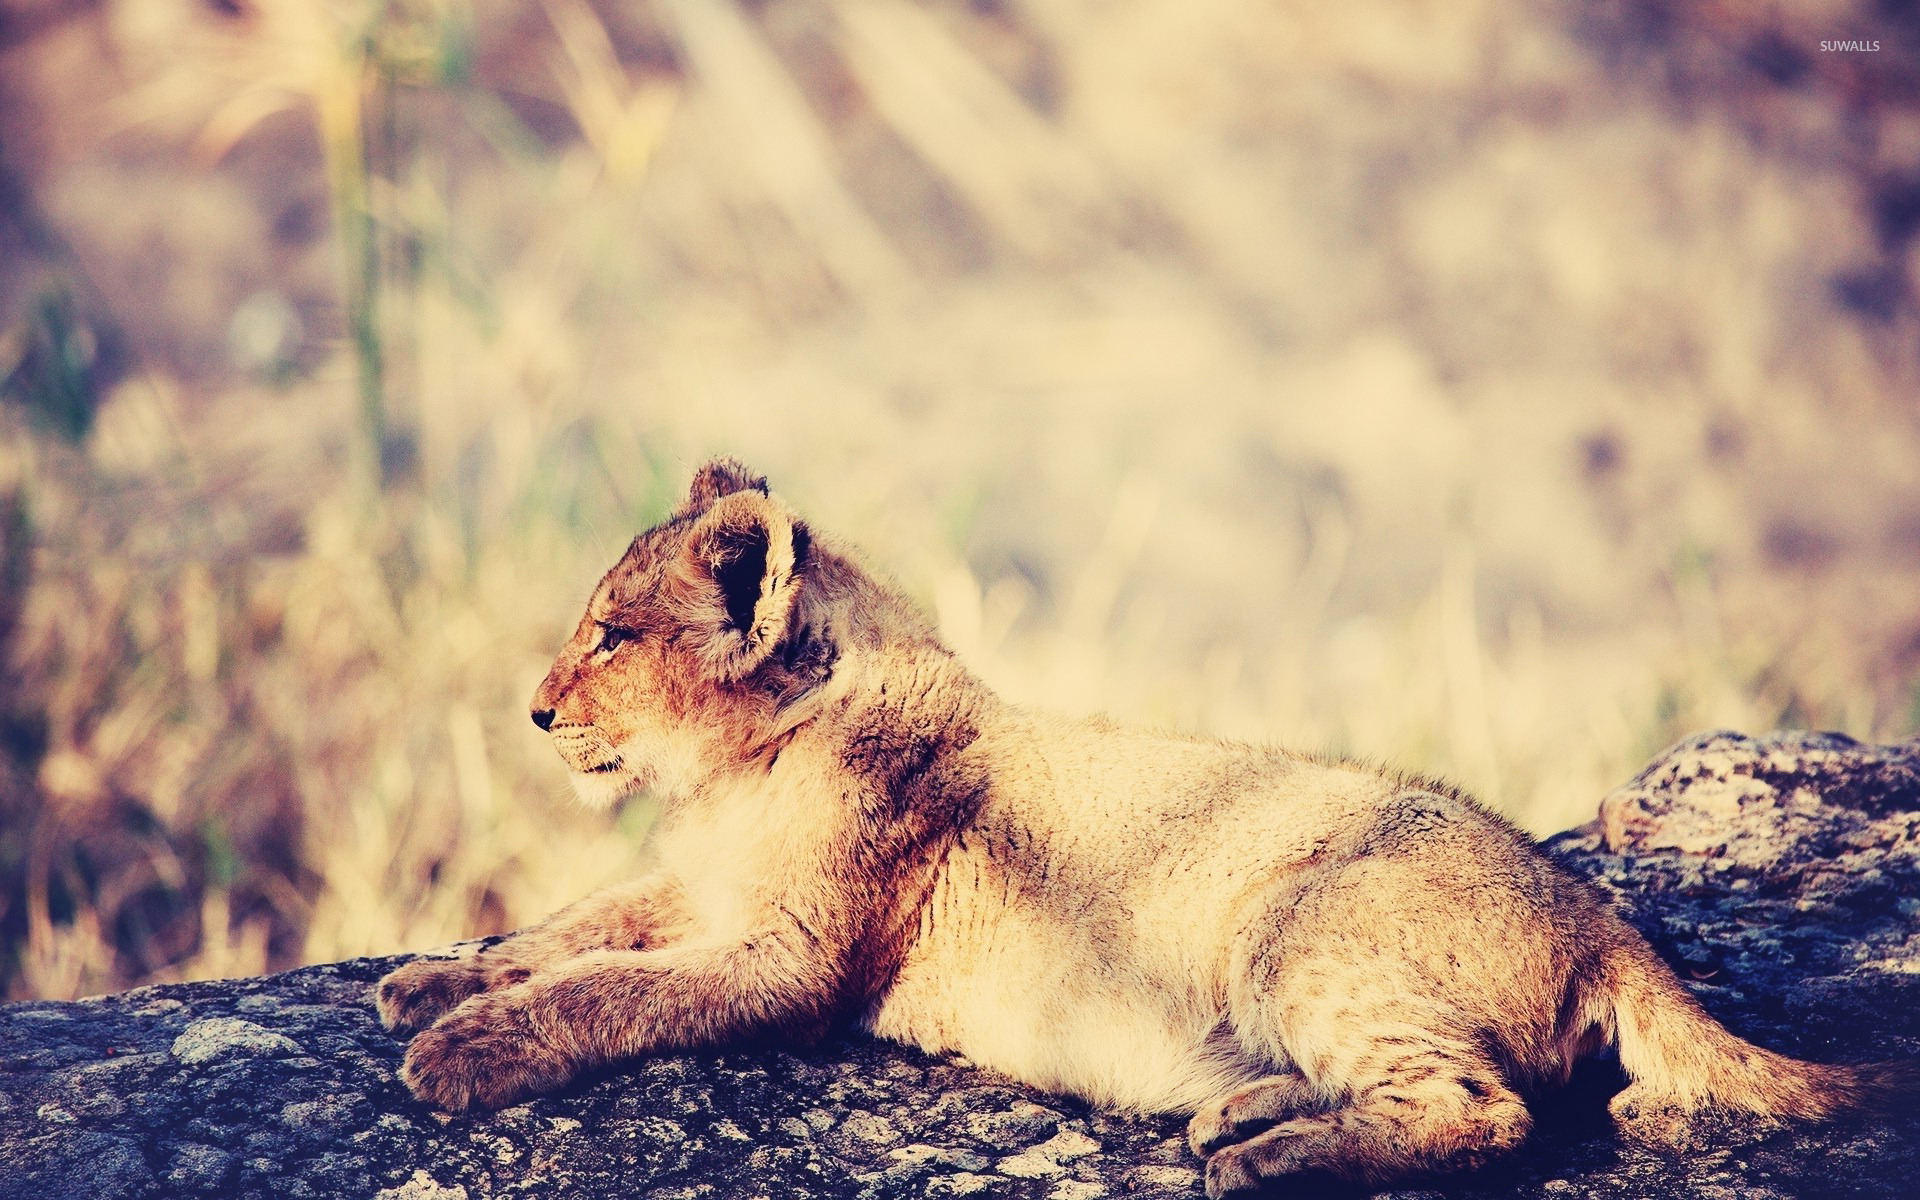 Lion cub wallpaper   Animal wallpapers   20771 1366x768